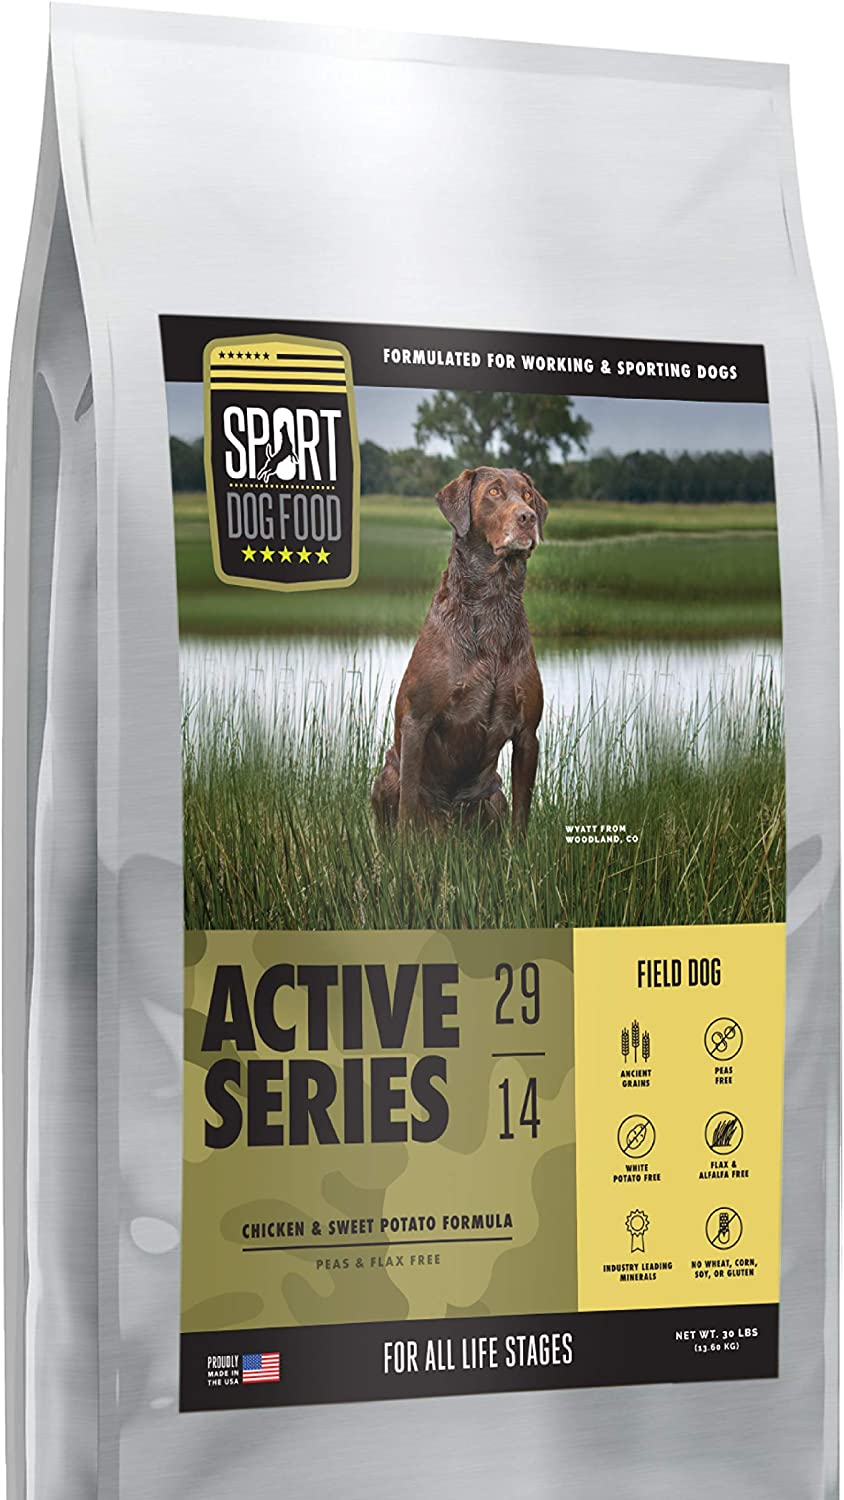 Active Series Field Dog Chicken Formula, Peas and Flax Free Dry Dog Food, 30 lb. bag